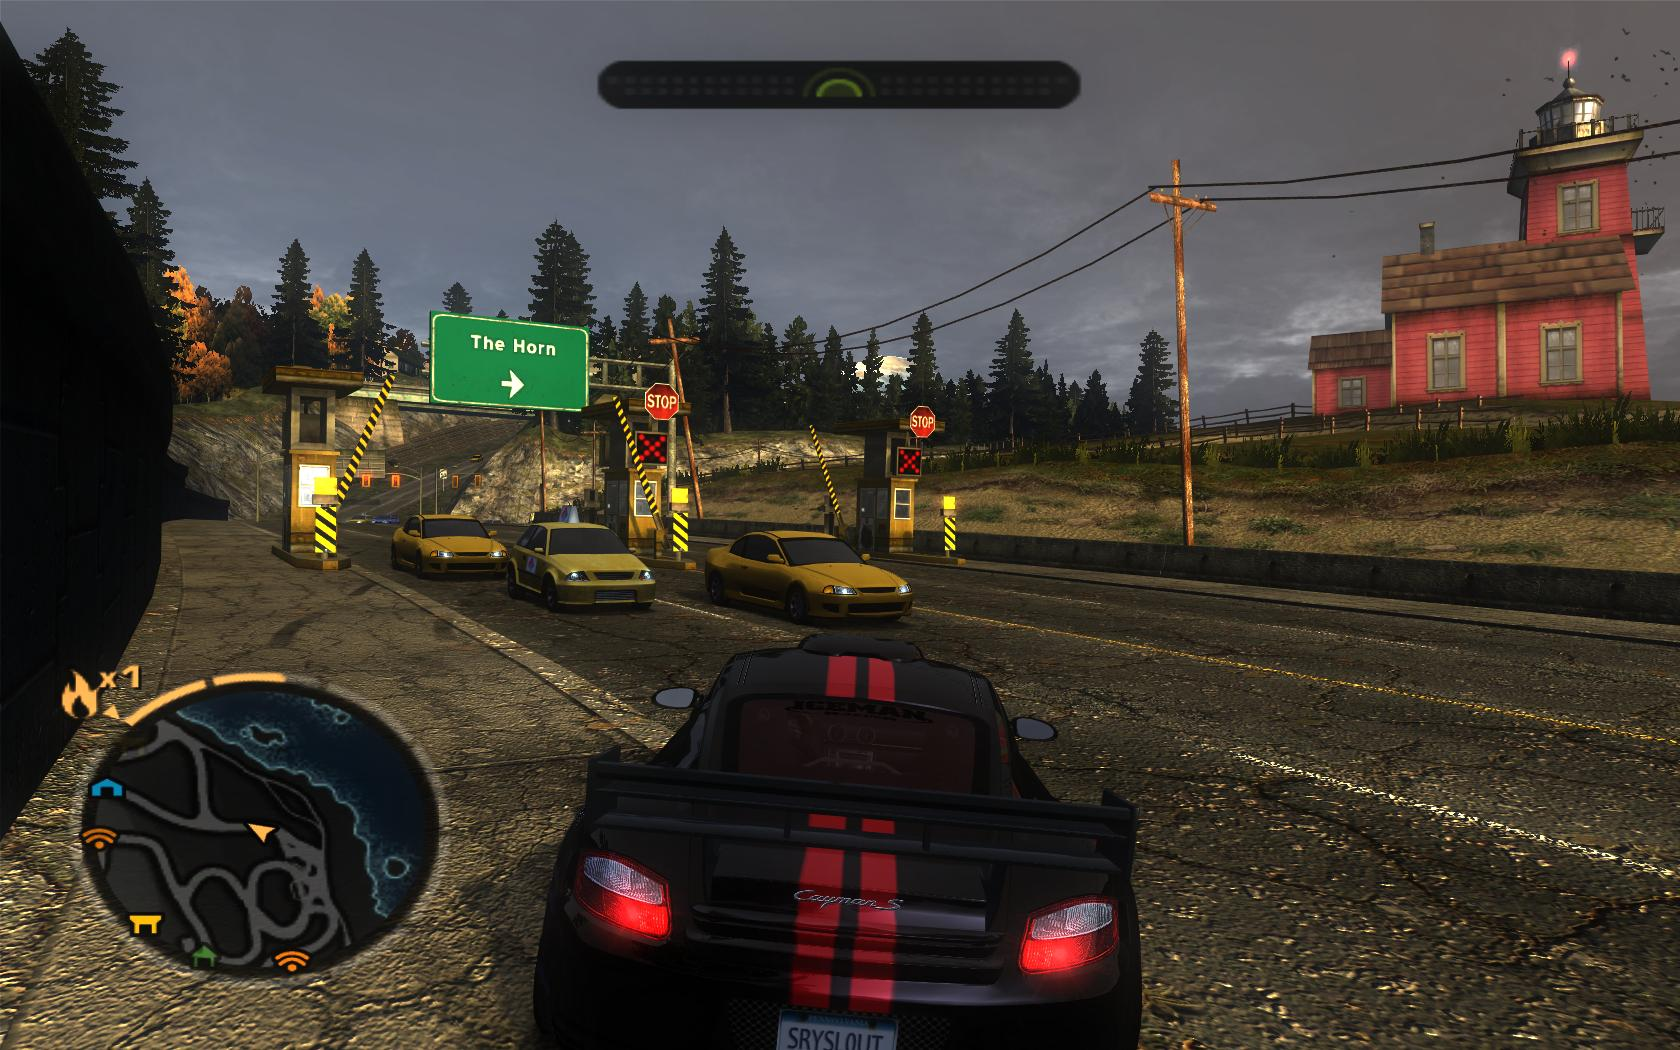 download crack need for speed most wanted black edition pc